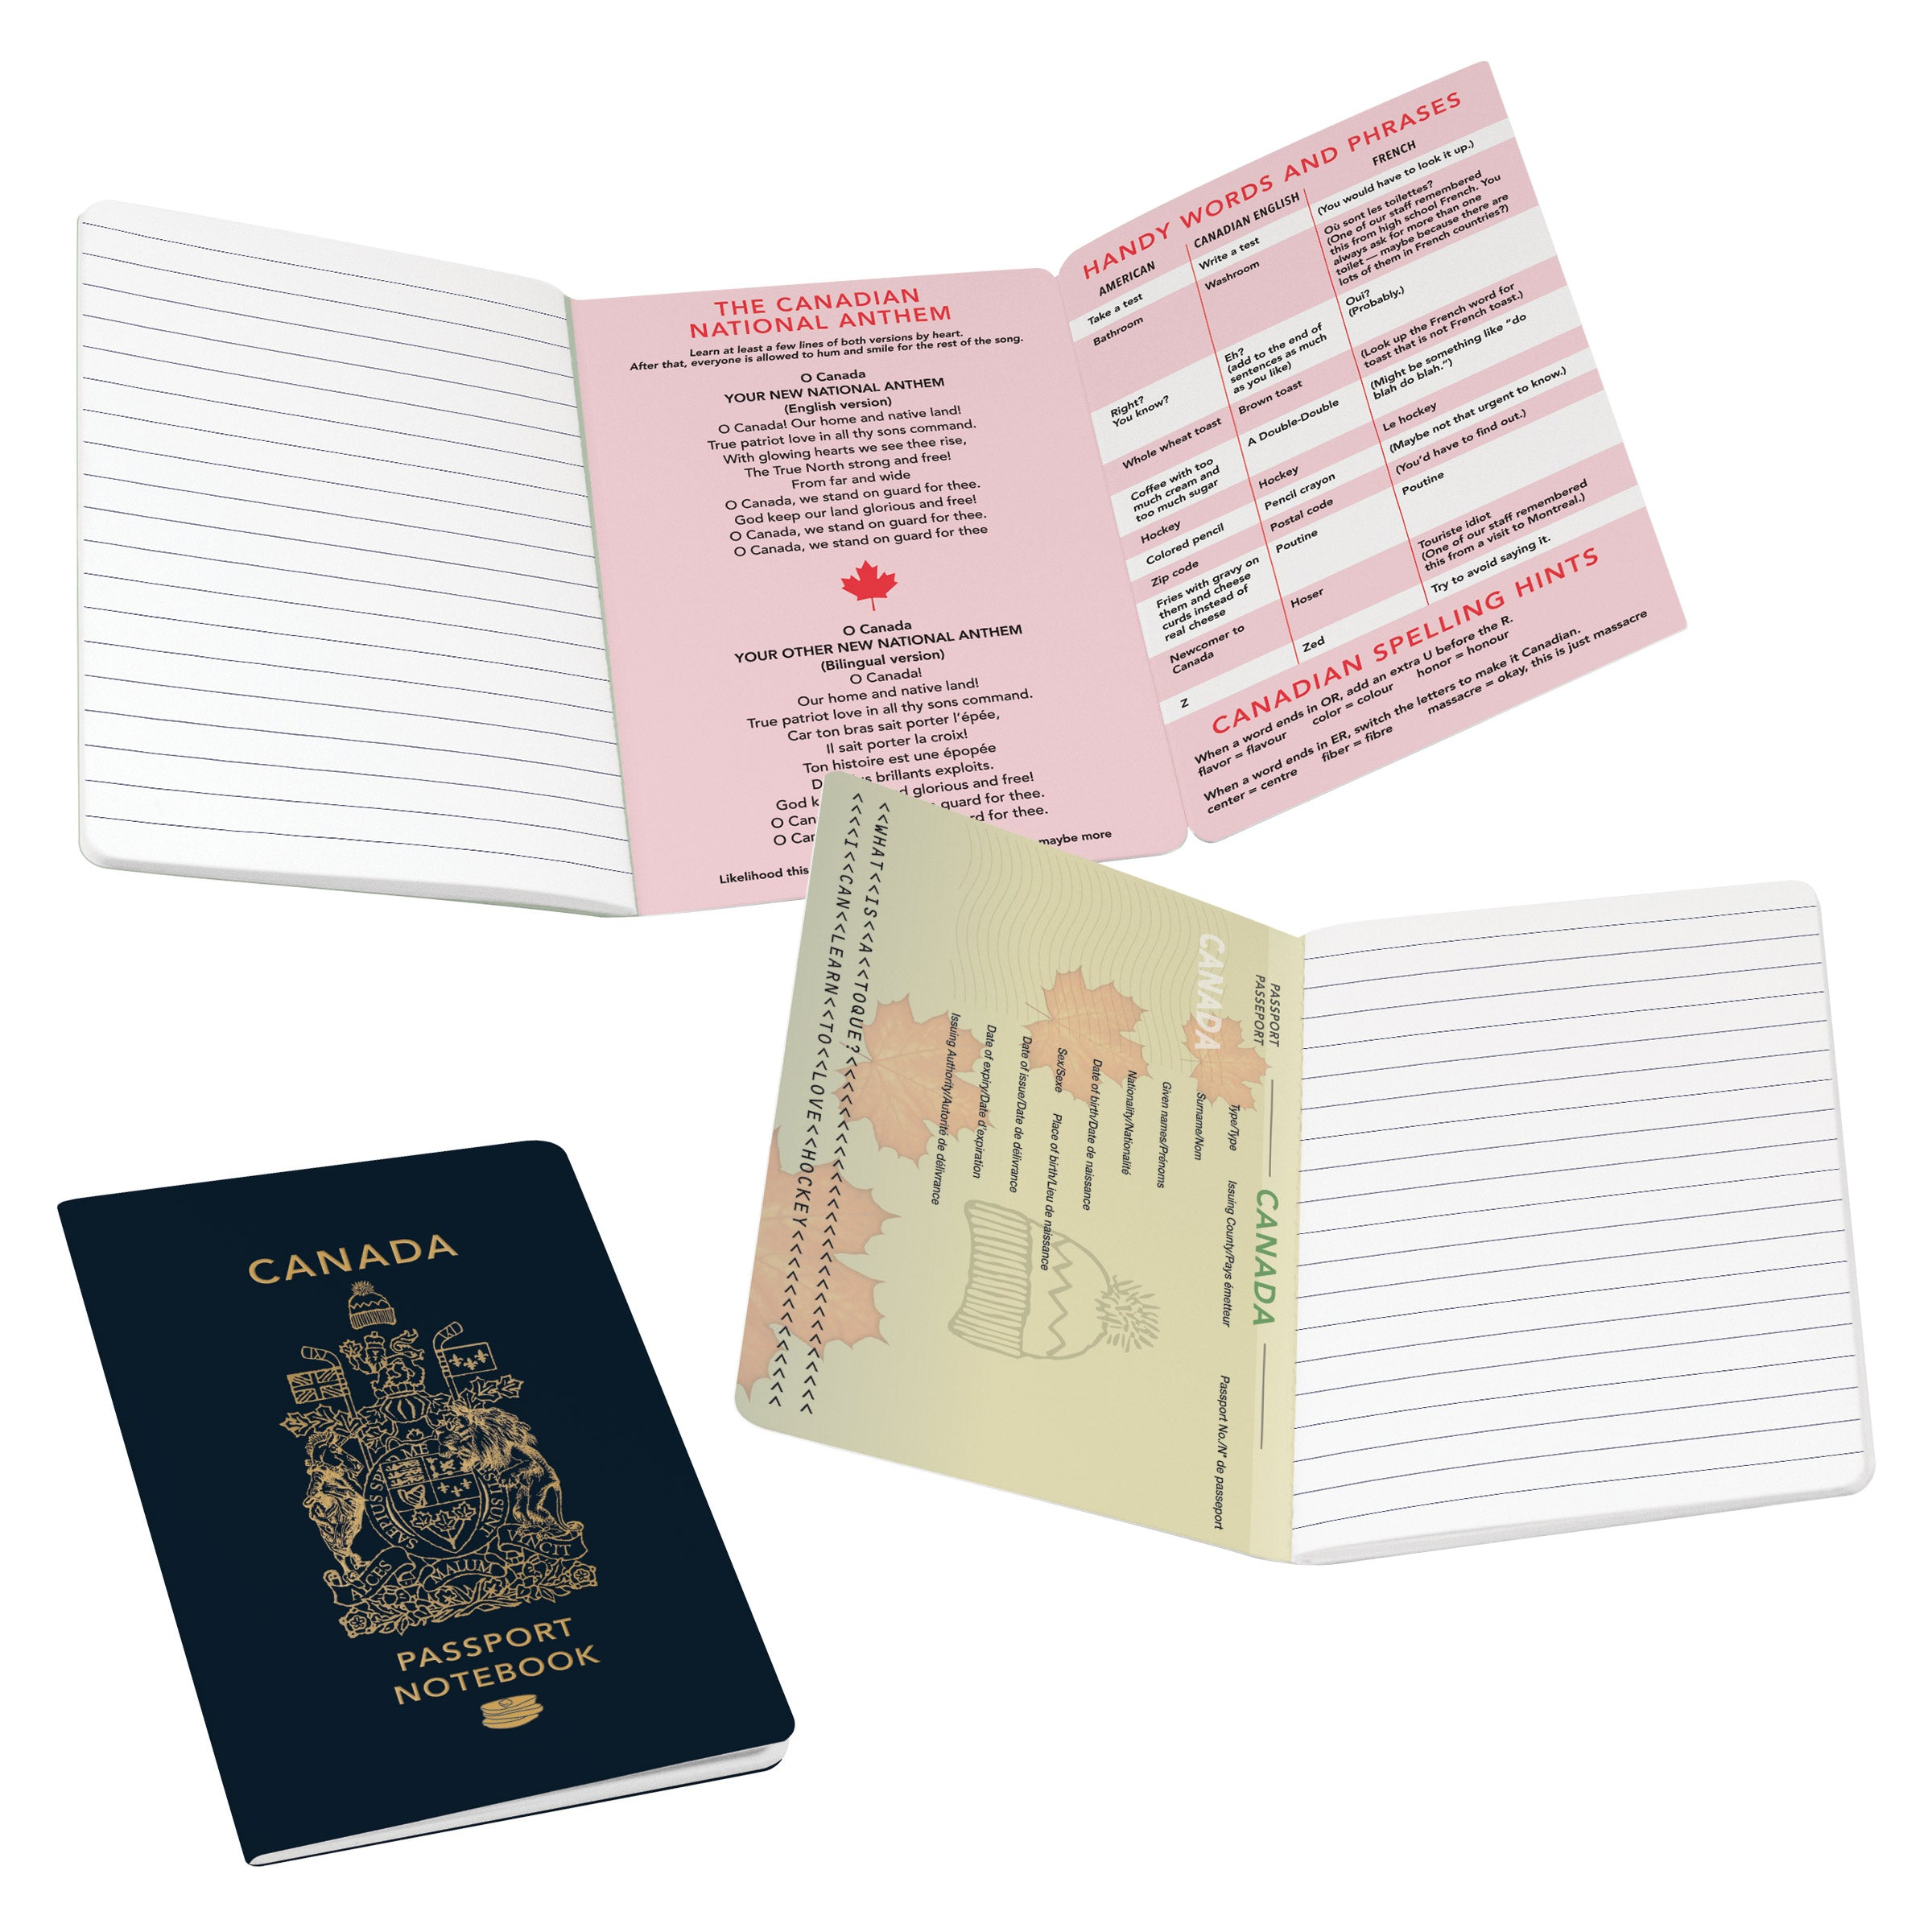 Canada Passport Notebook